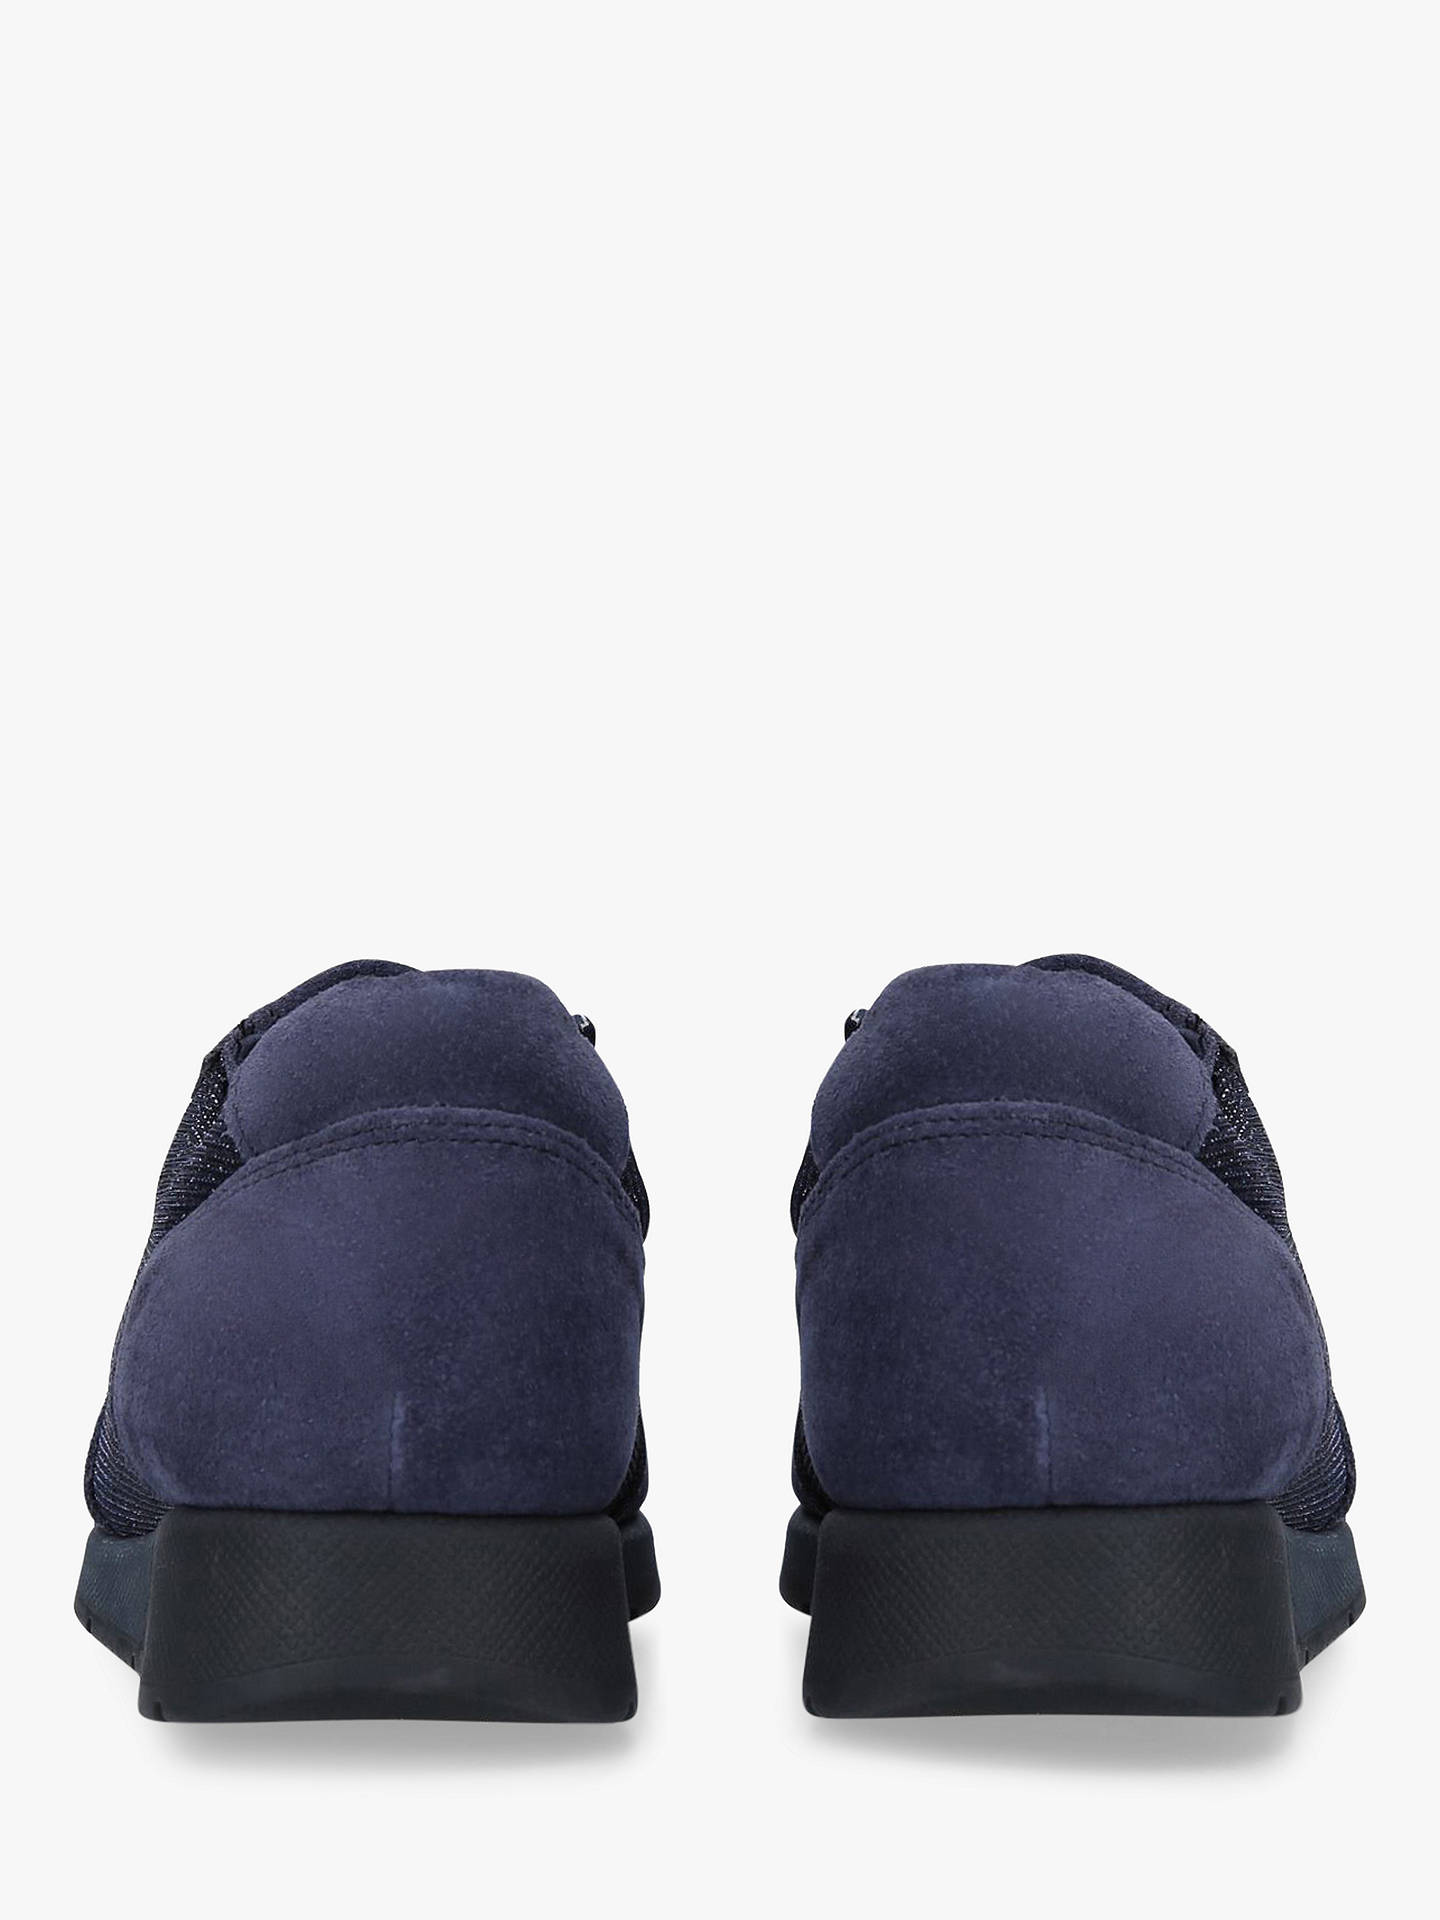 Buy Carvela Comfort Comma Textured Trainers, Navy Blue, 4 Online at johnlewis.com